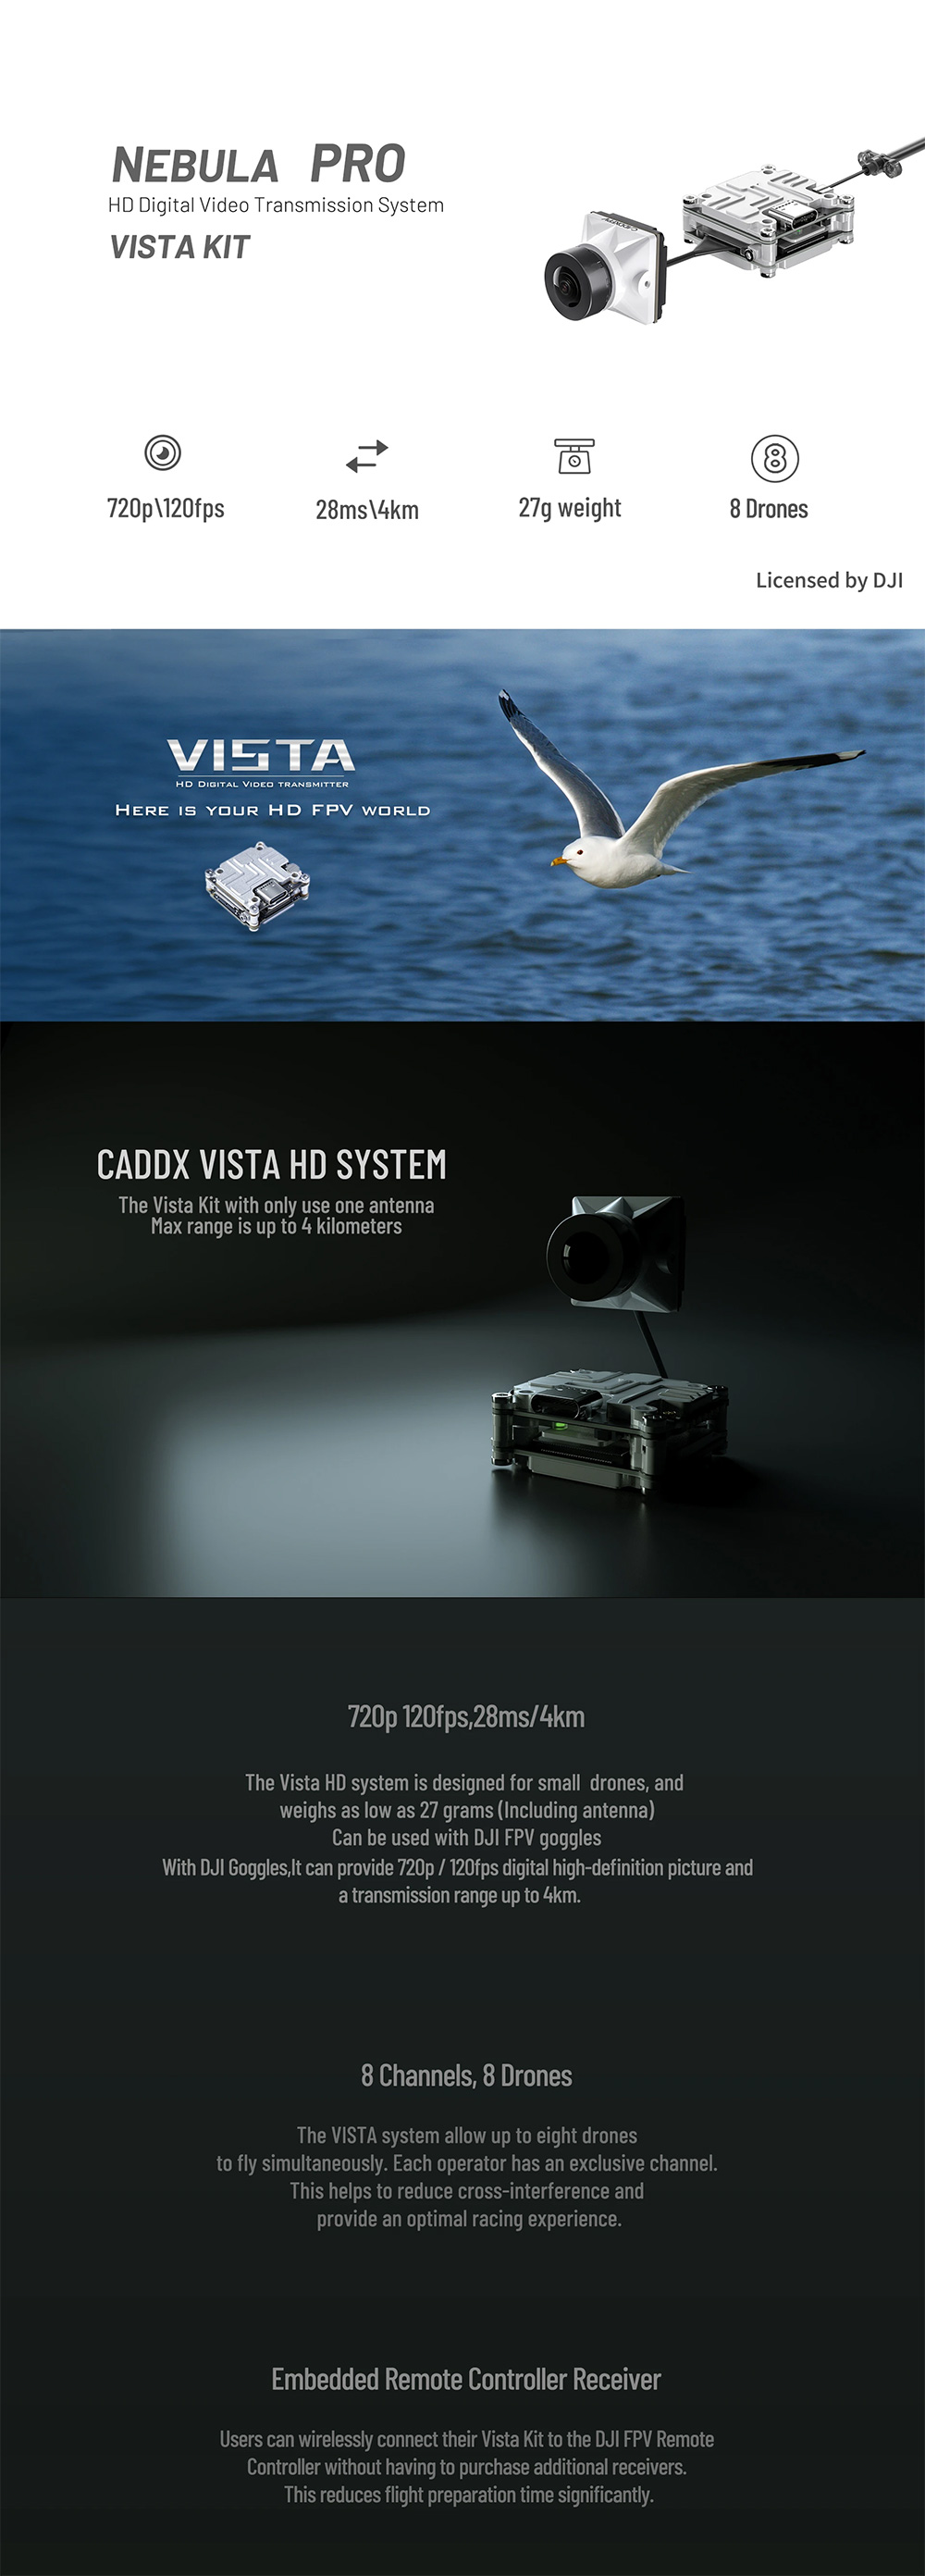 Caddx Nebula Pro Vista Kit 720p/120fps low latency HD digital FPV system